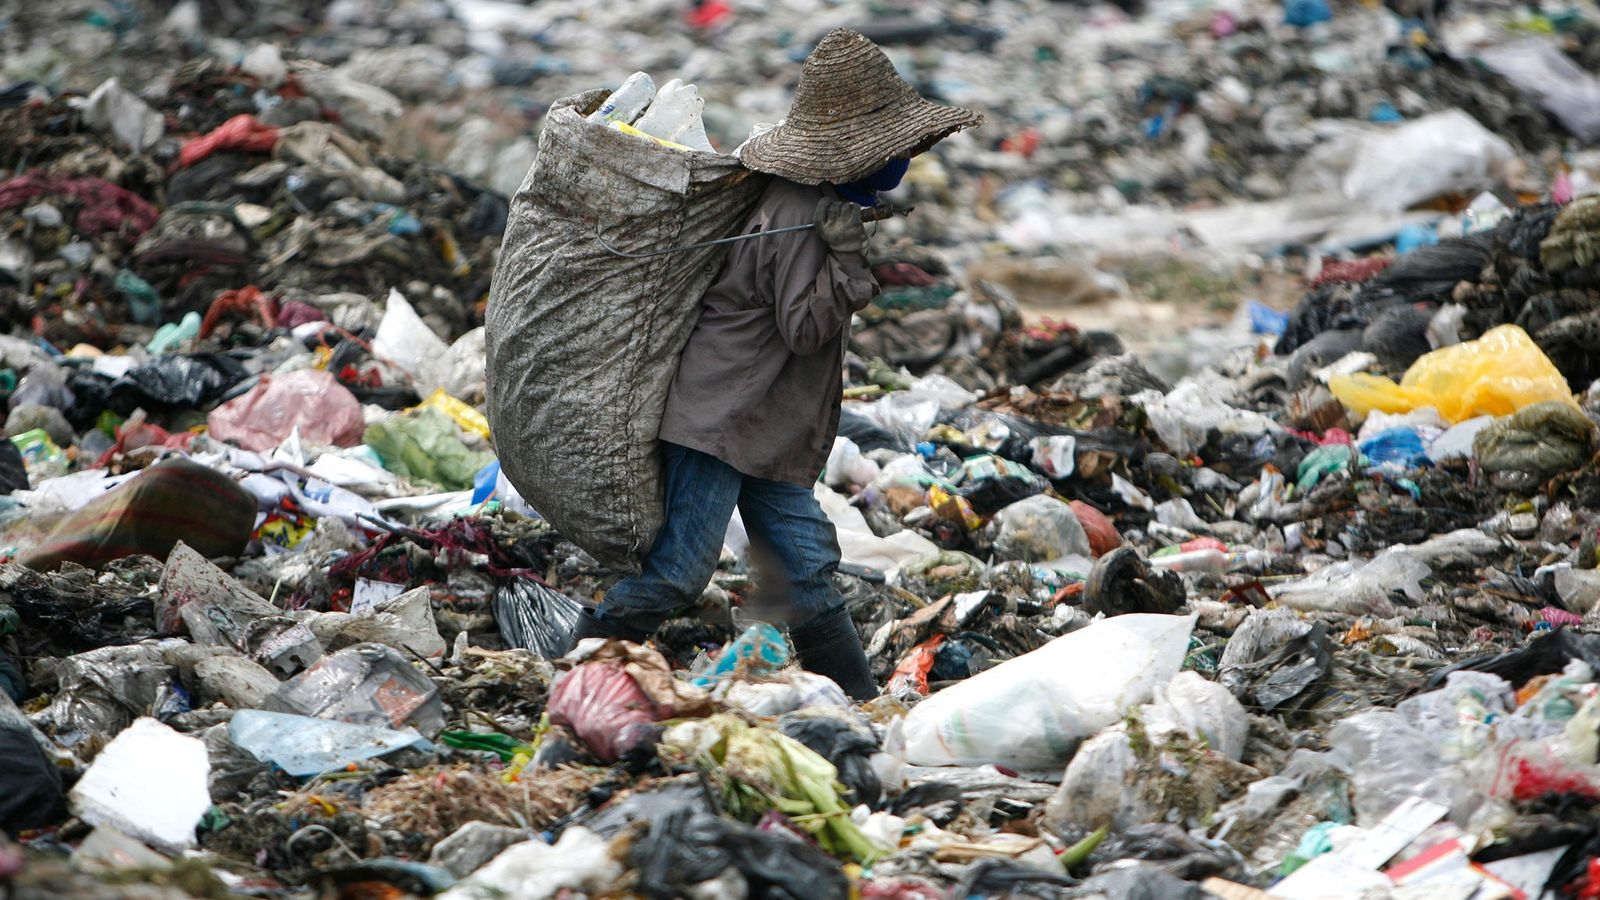 A man looks for plastic to recycle at a garbage site in Malaysia.